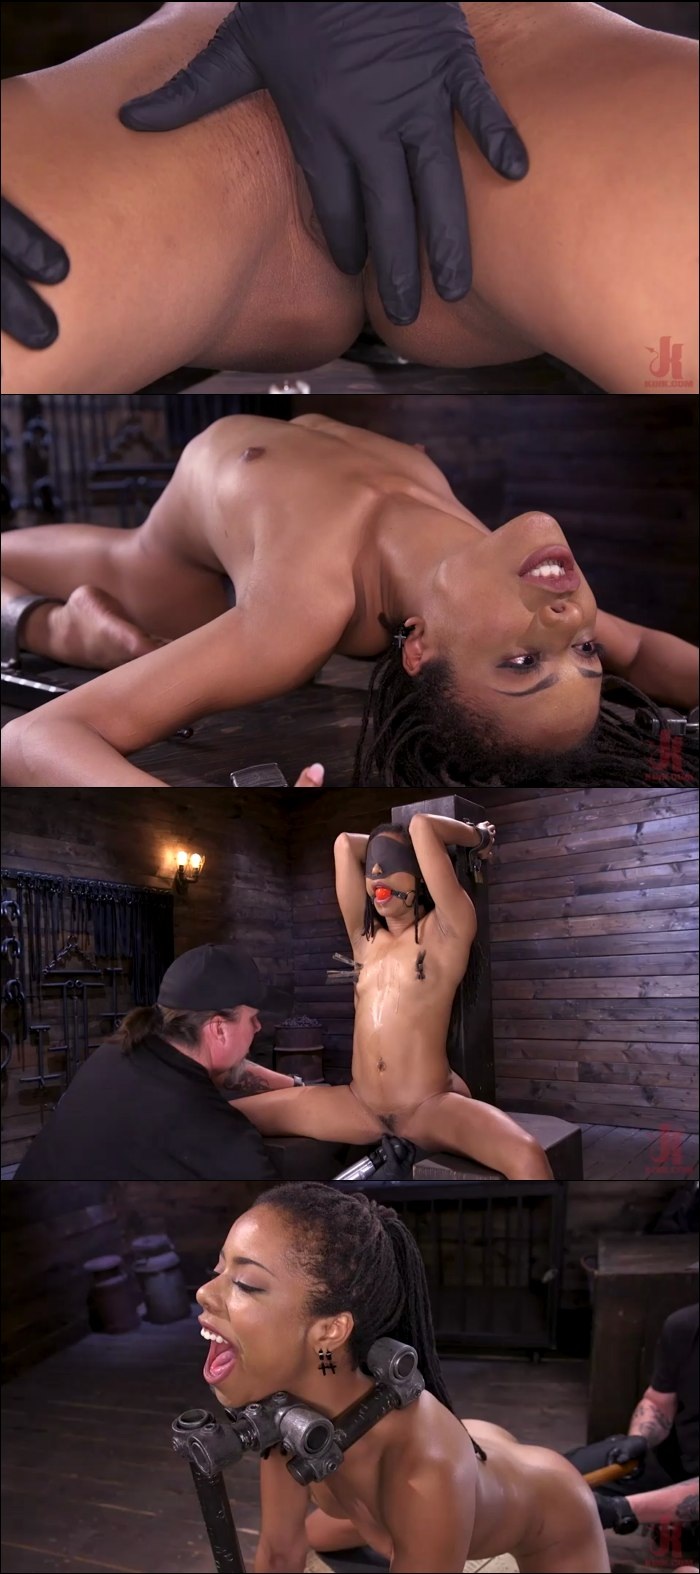 Pain factory bdsm, soundless porn pussy fucked